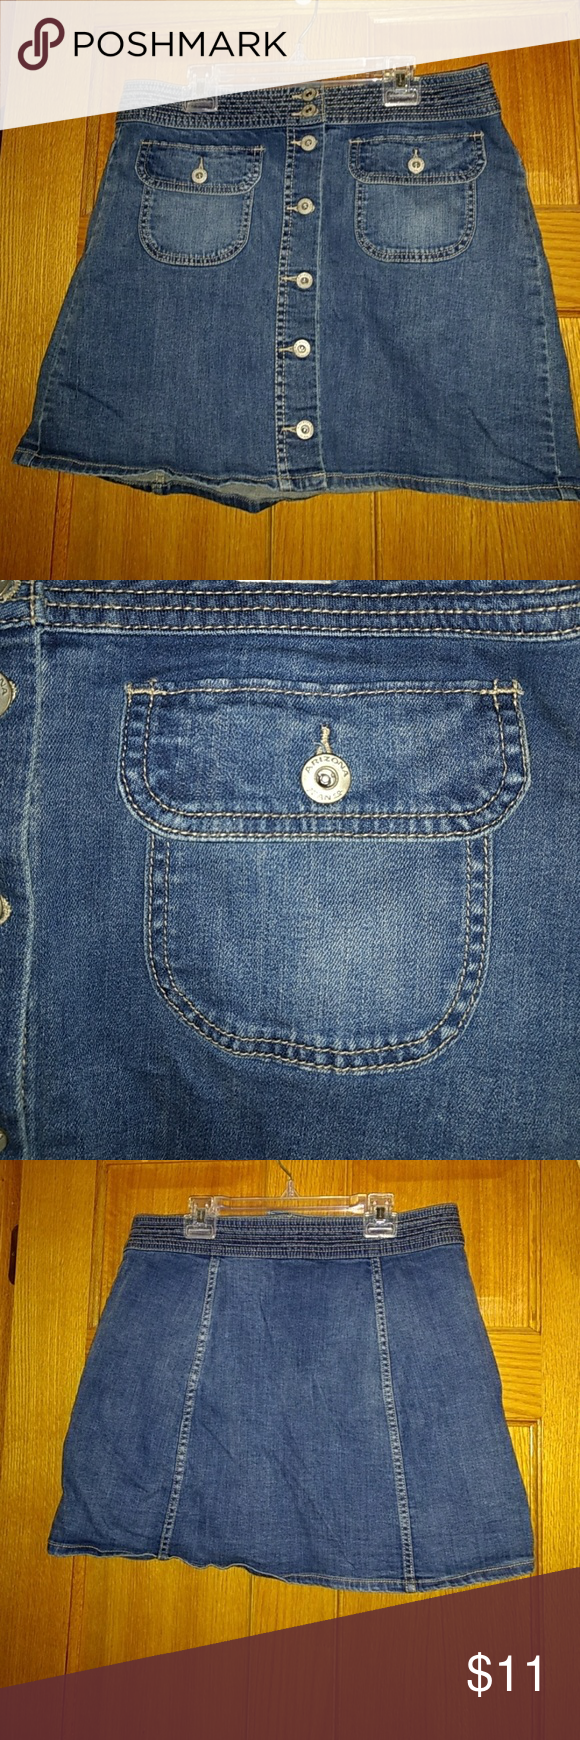 "Arizona button denim skirt size 13 Size 13  Arizona brand Denim skirt Denim is stretchy  About 16"" across at waist About 23.5"" across at bottom 16"" tall Worn several times, like new Arizona Jean Company Skirts Mini"